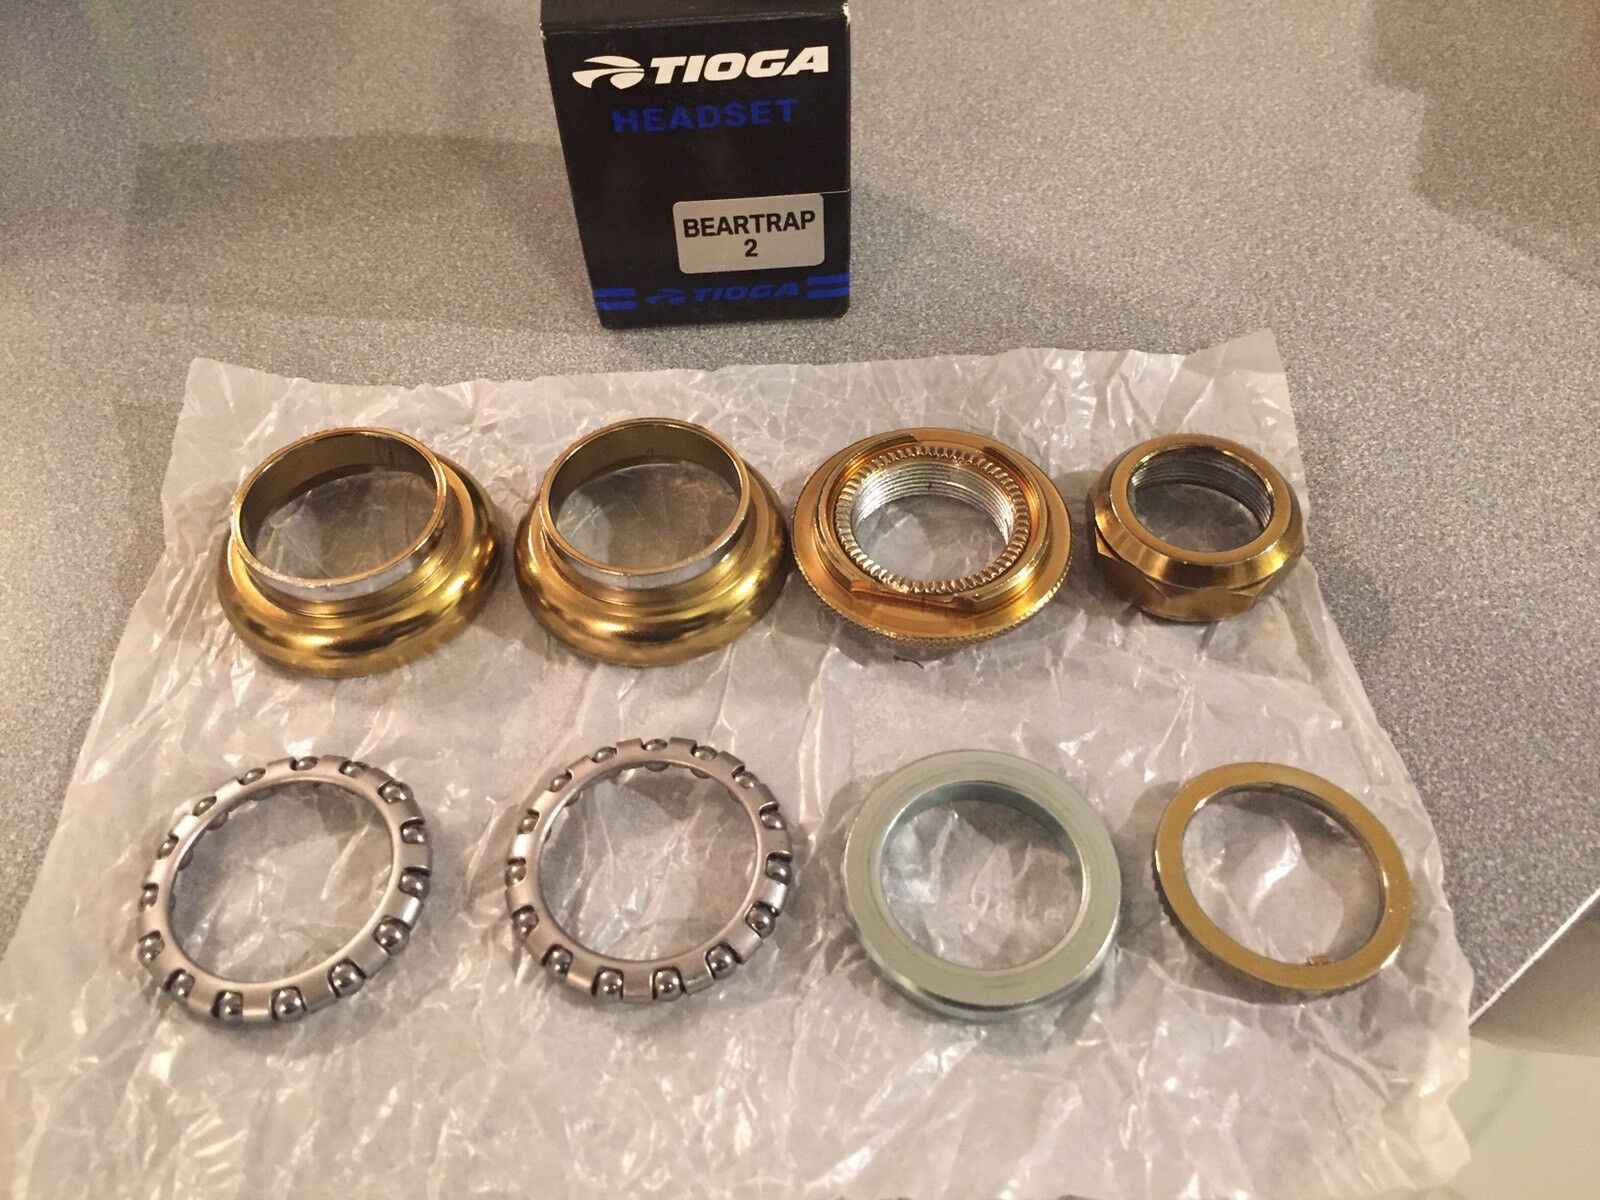 OLD SCHOOL BMX TIOGA BEARTRAP 2  HEADSET gold 1  threaded NEW tange gt  online sales